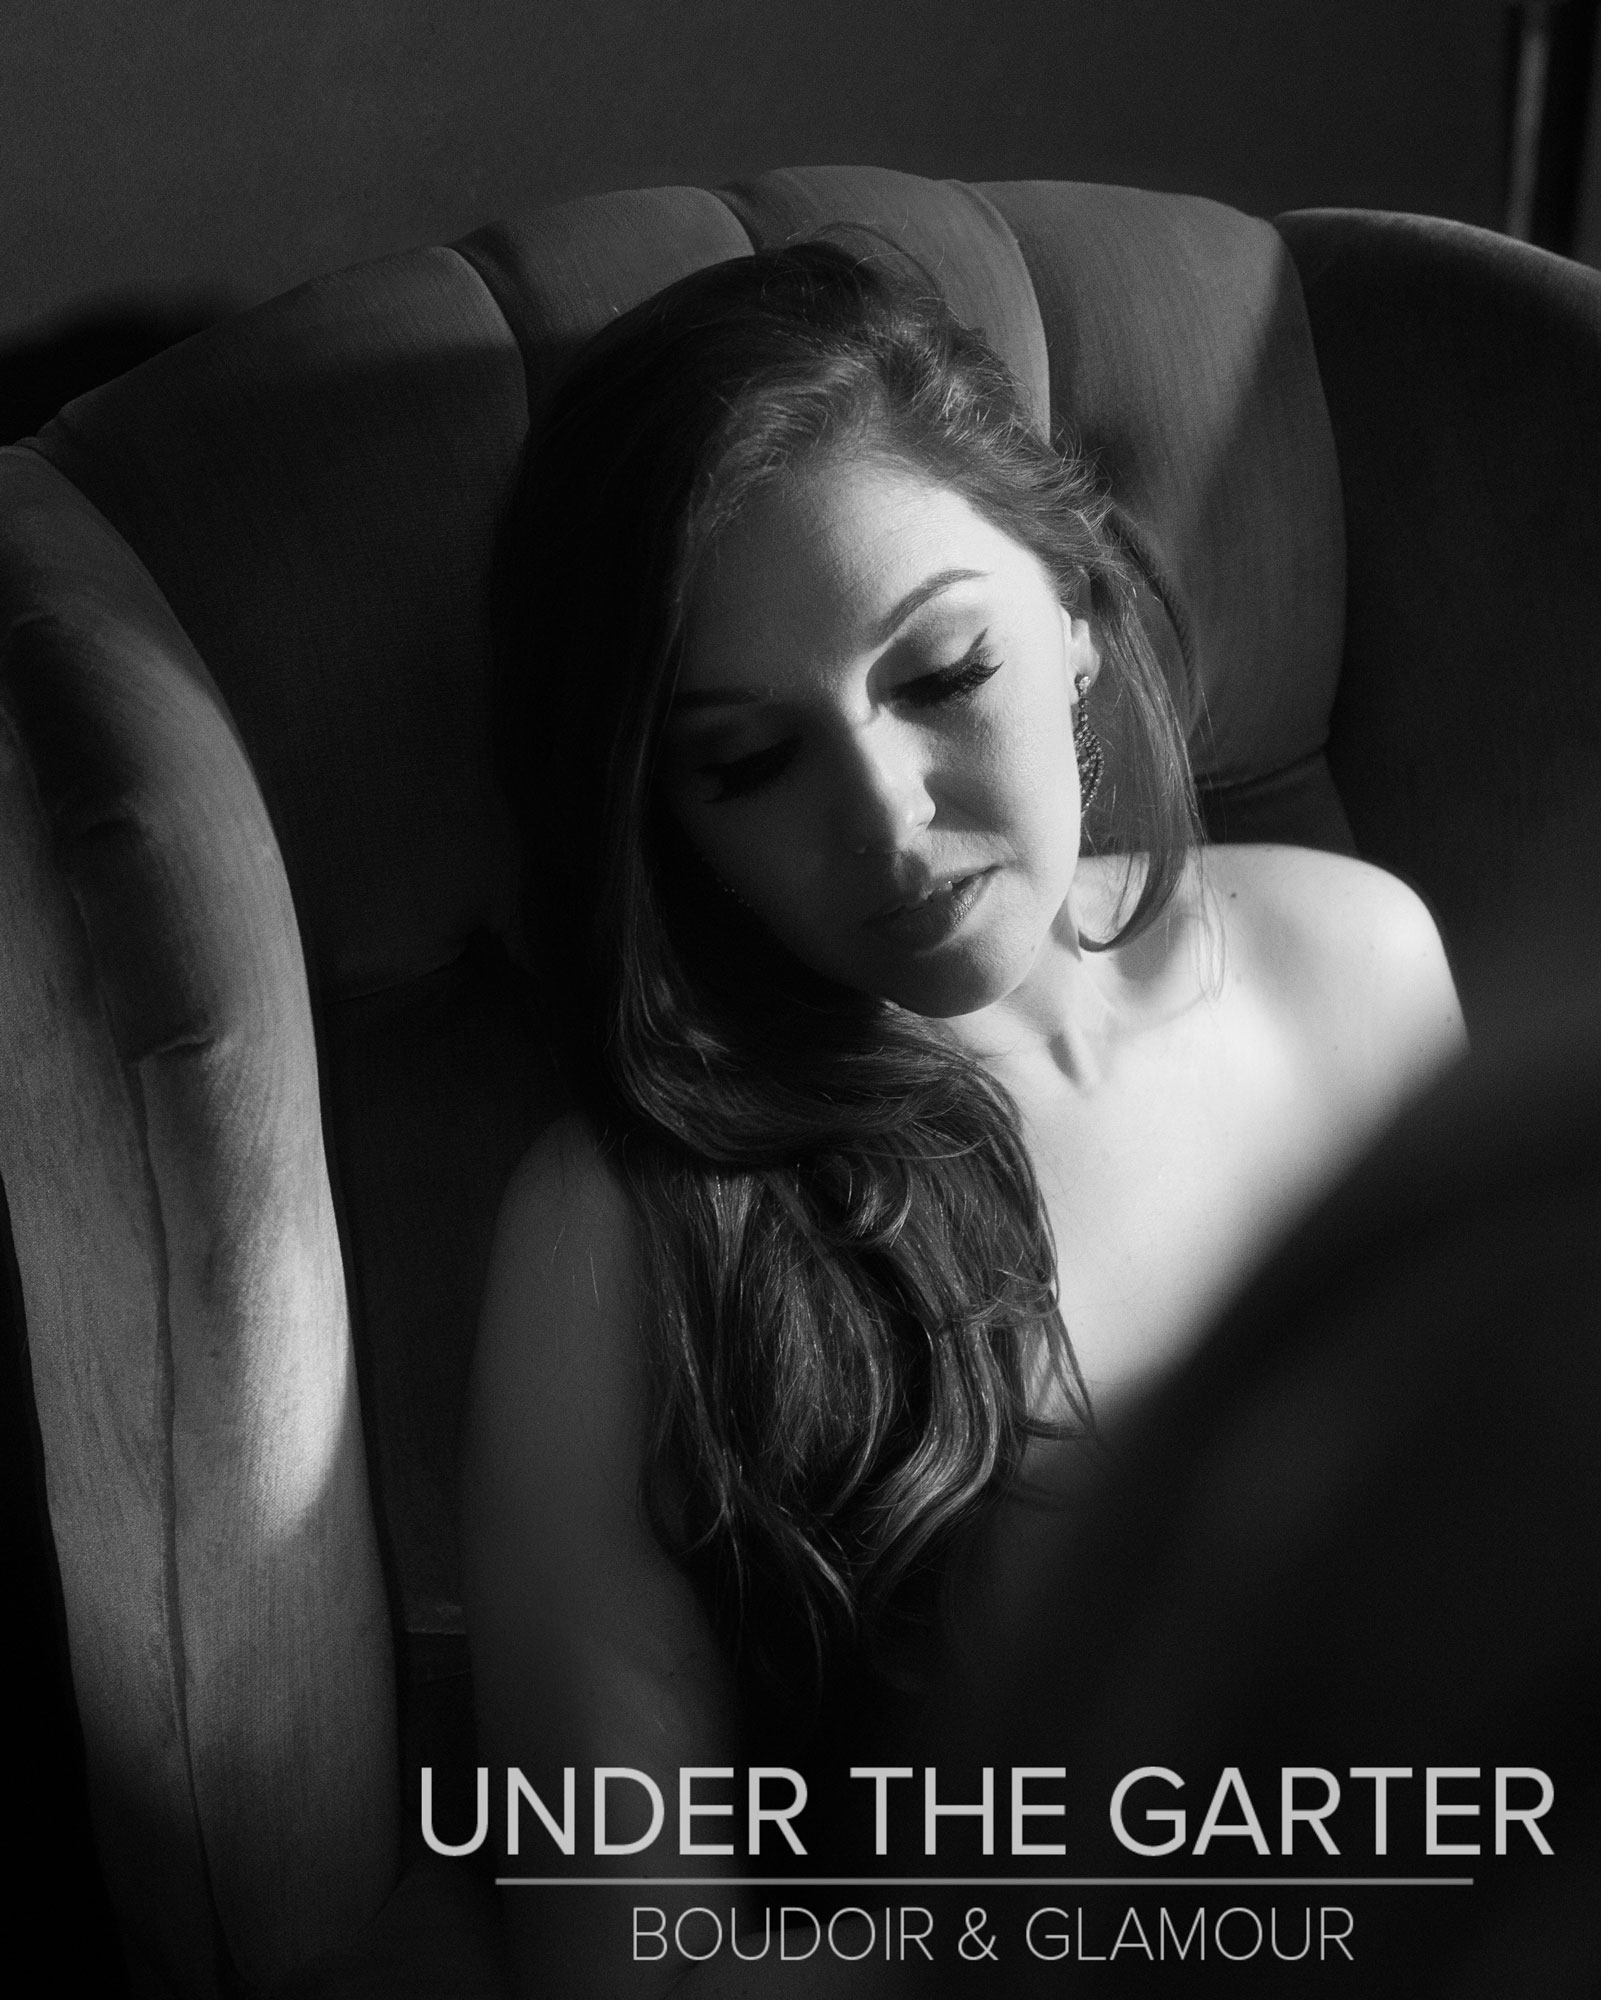 Boudoir Photography Denver | Under the Garter ©2014 All Rights Reserved www.underthegarter.com